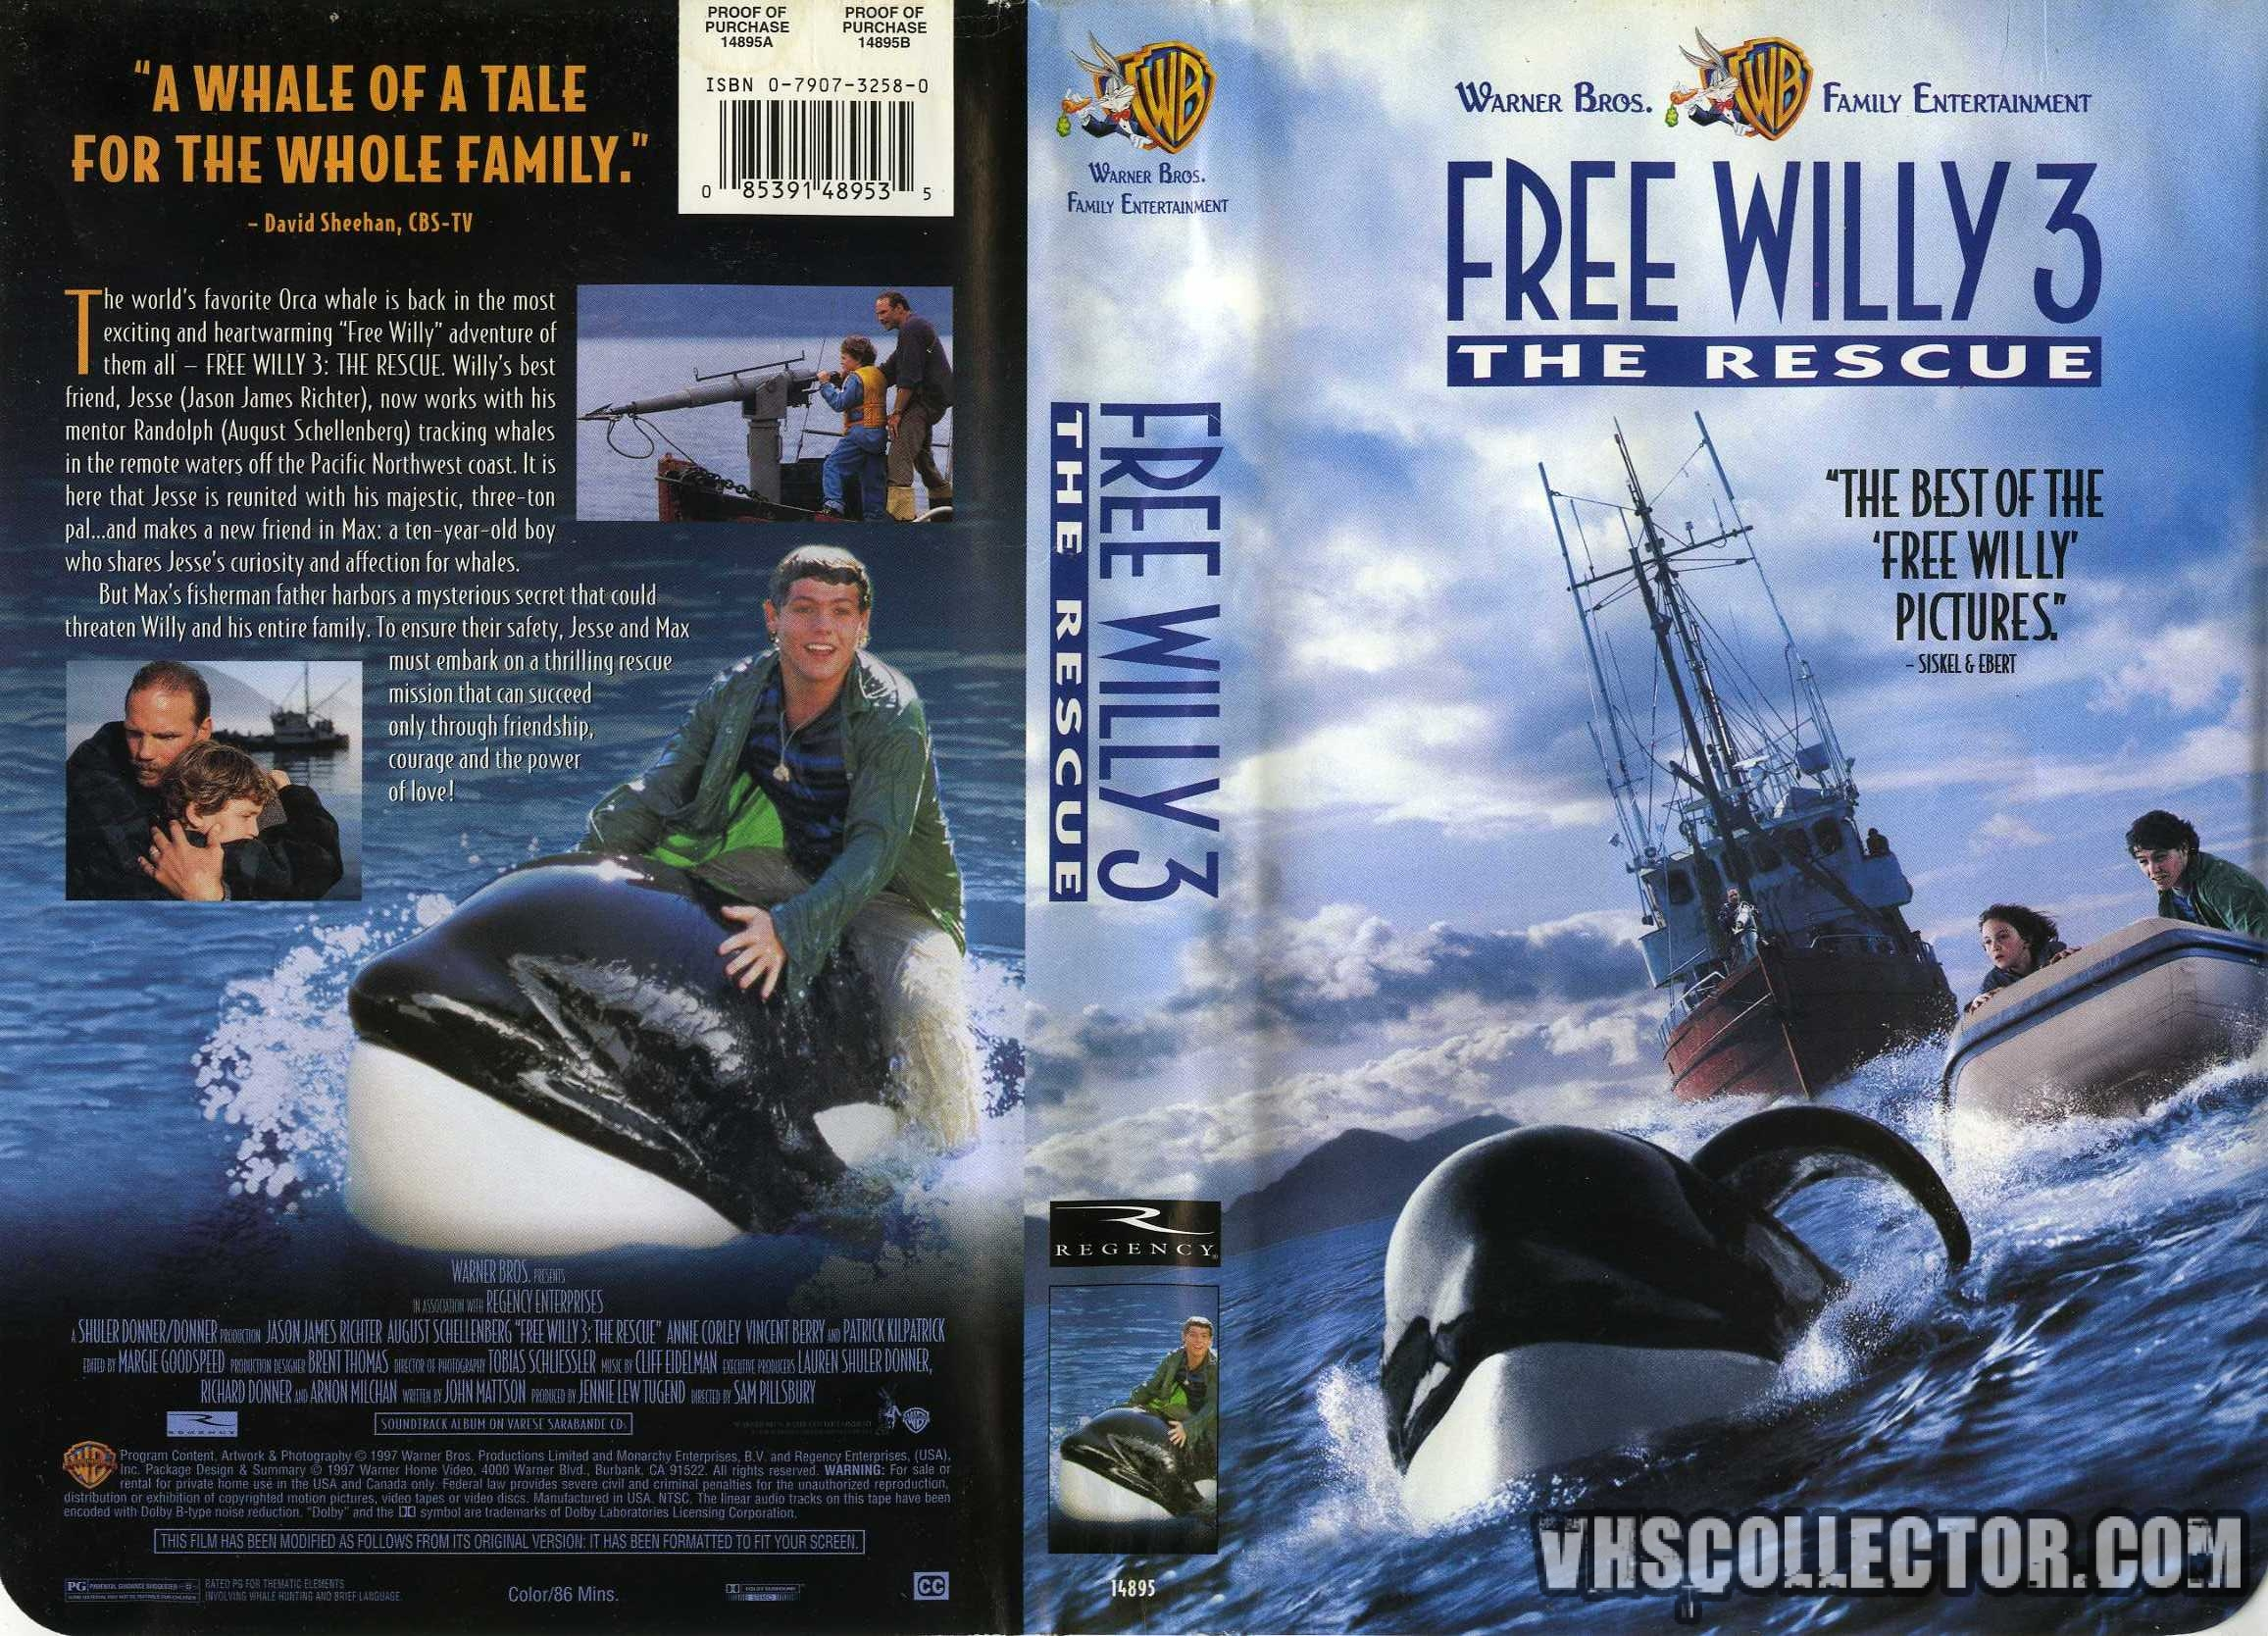 Free Willy 3: The Rescue - Wikipedia